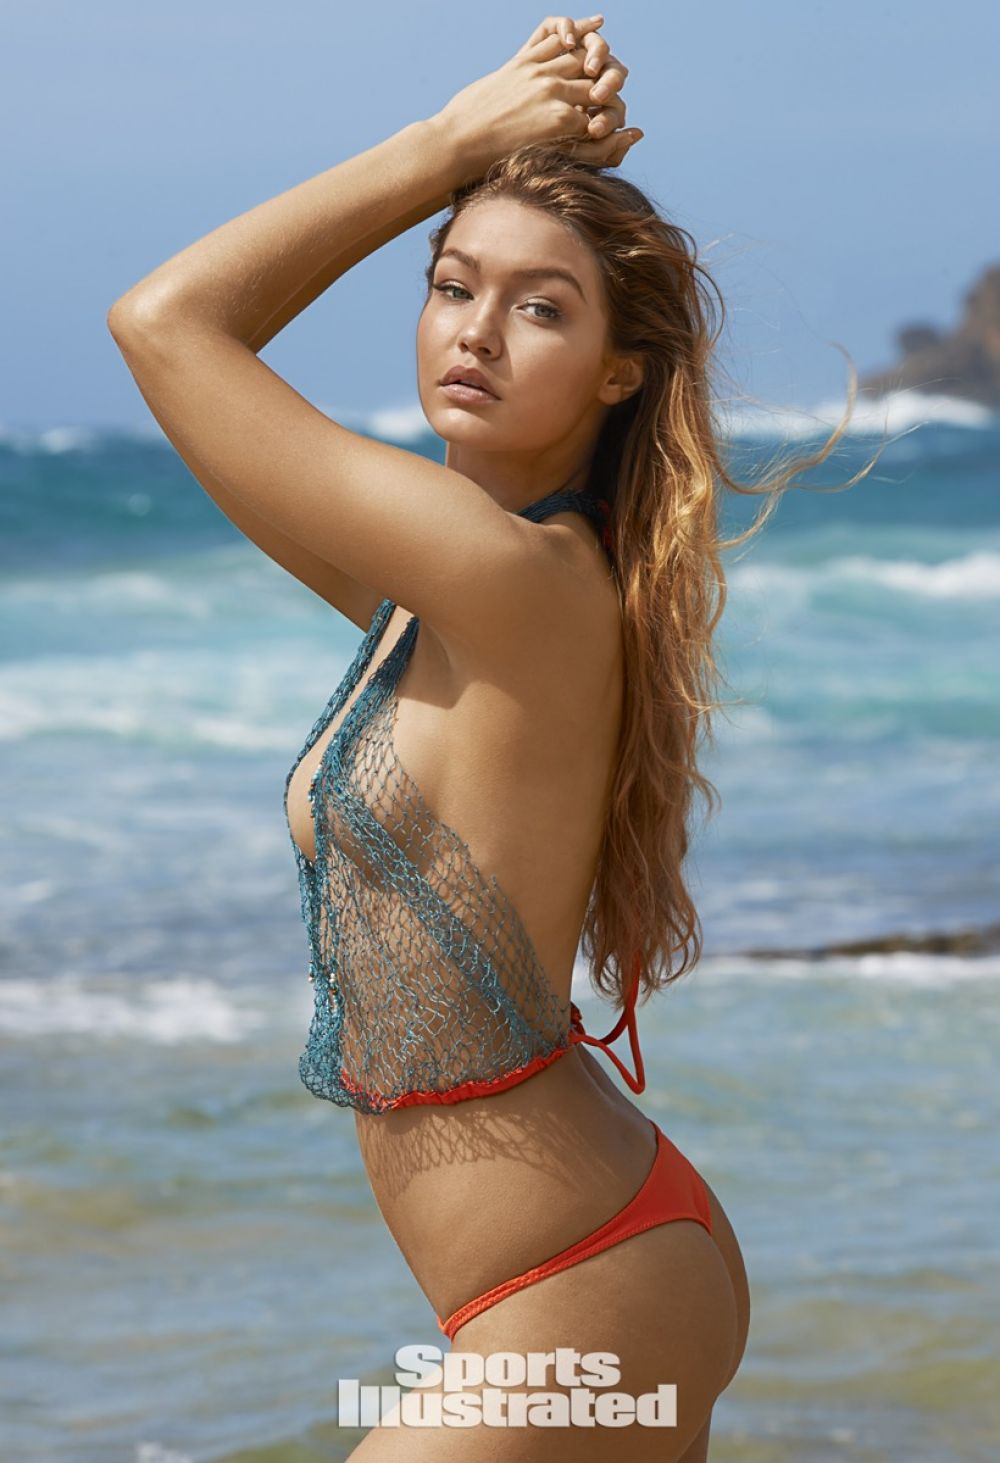 GIGI HADID in Sports Illustrated Swimsuit 2015 Issue ...